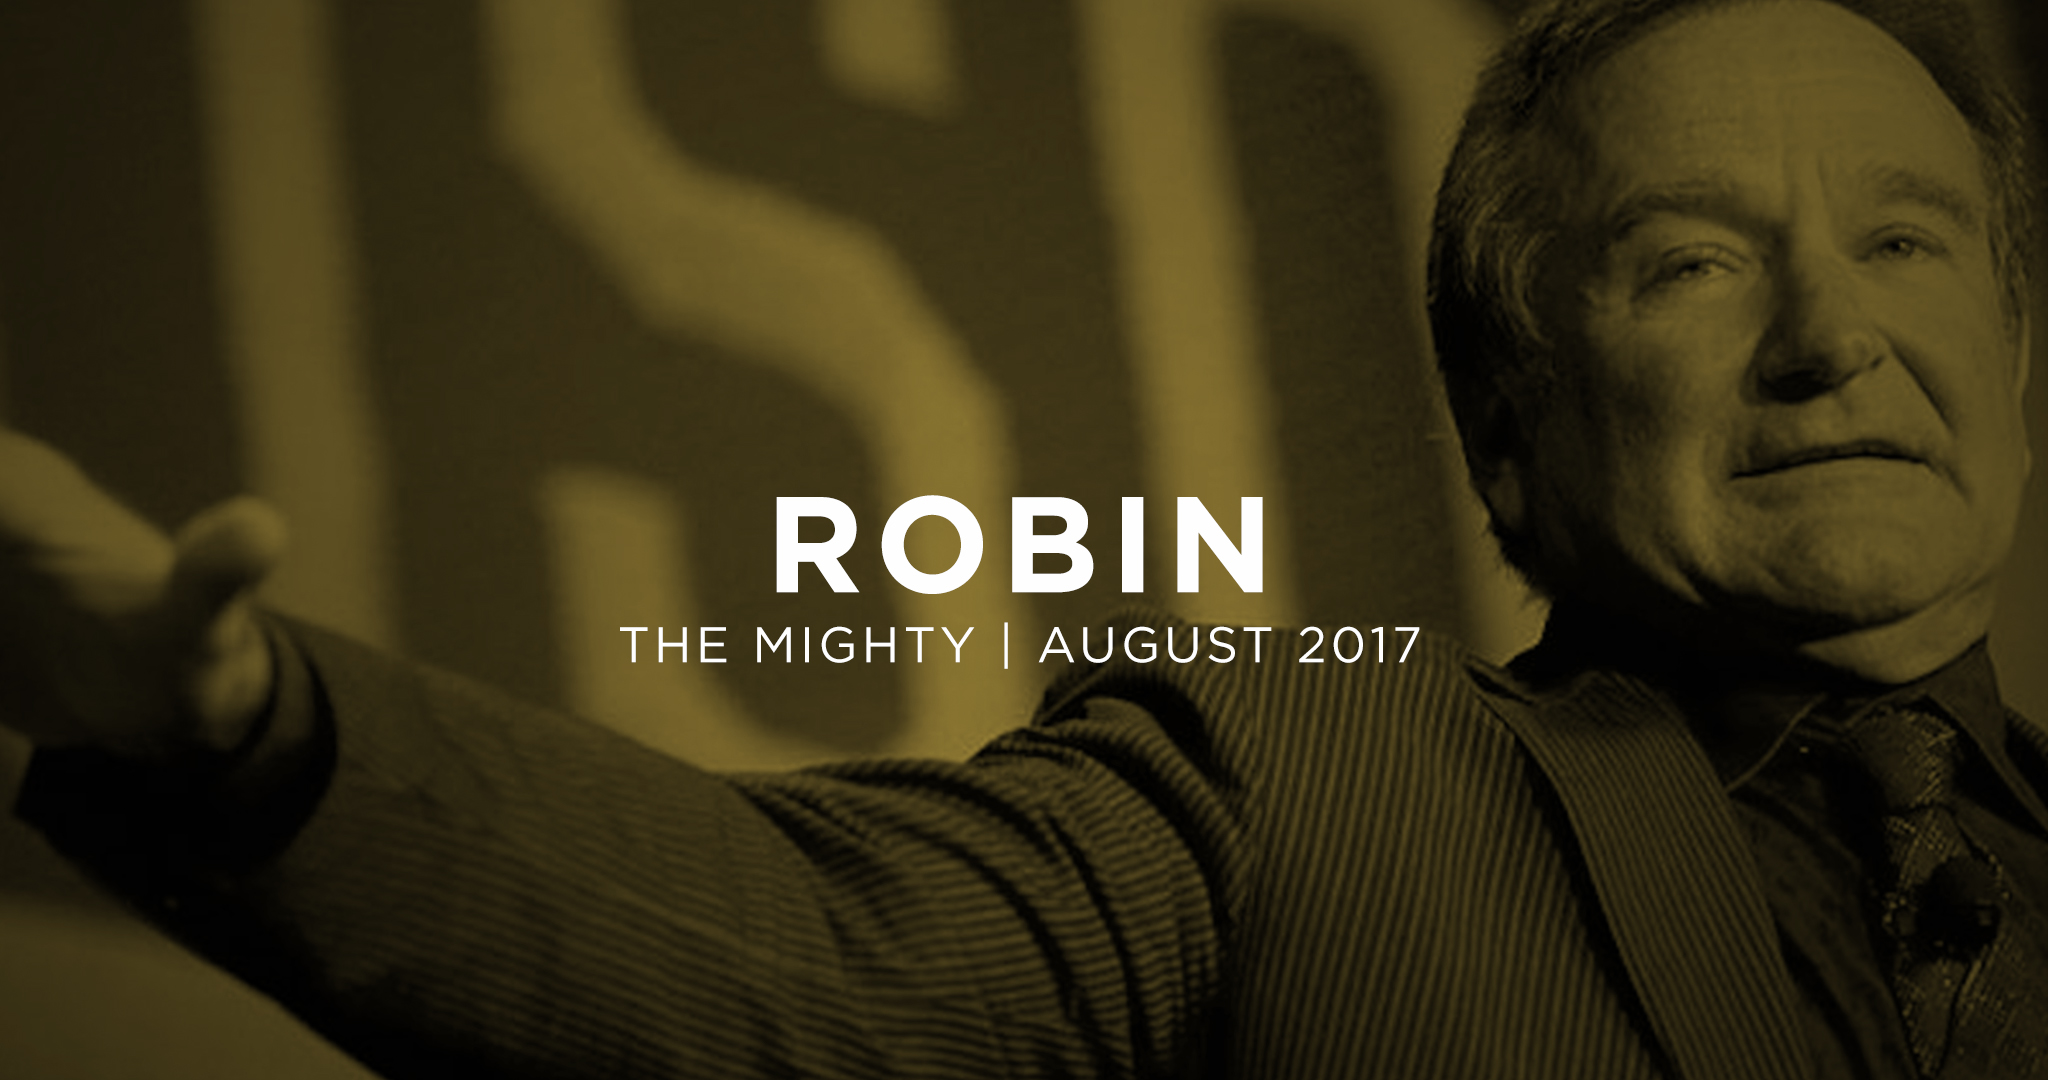 Reflection about depression after Robin Williams death. August 10, 2017